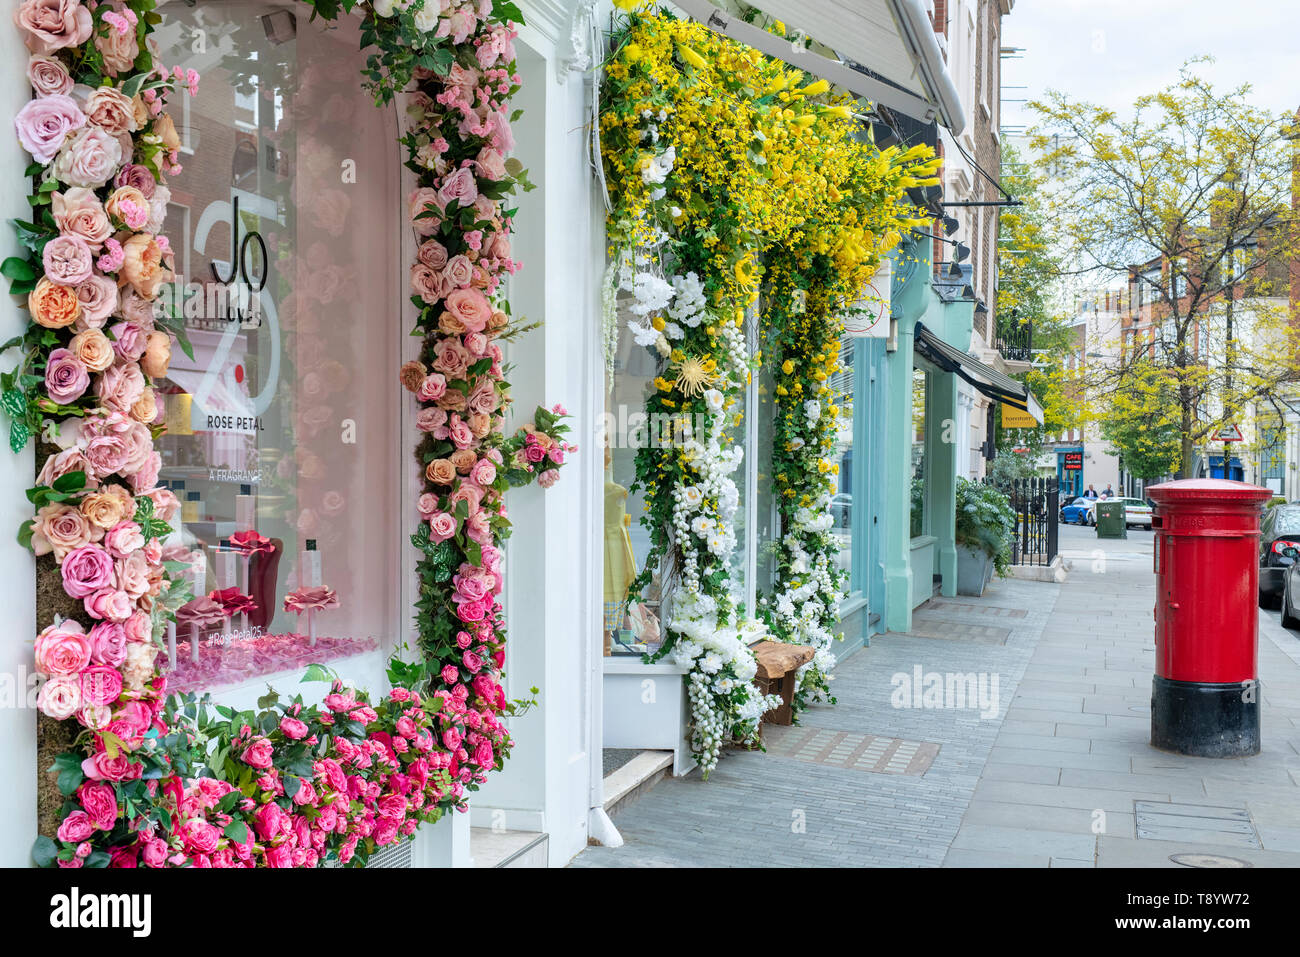 Jo Loves shop. Elizabeth Street, Belgravia, London, England - Stock Image